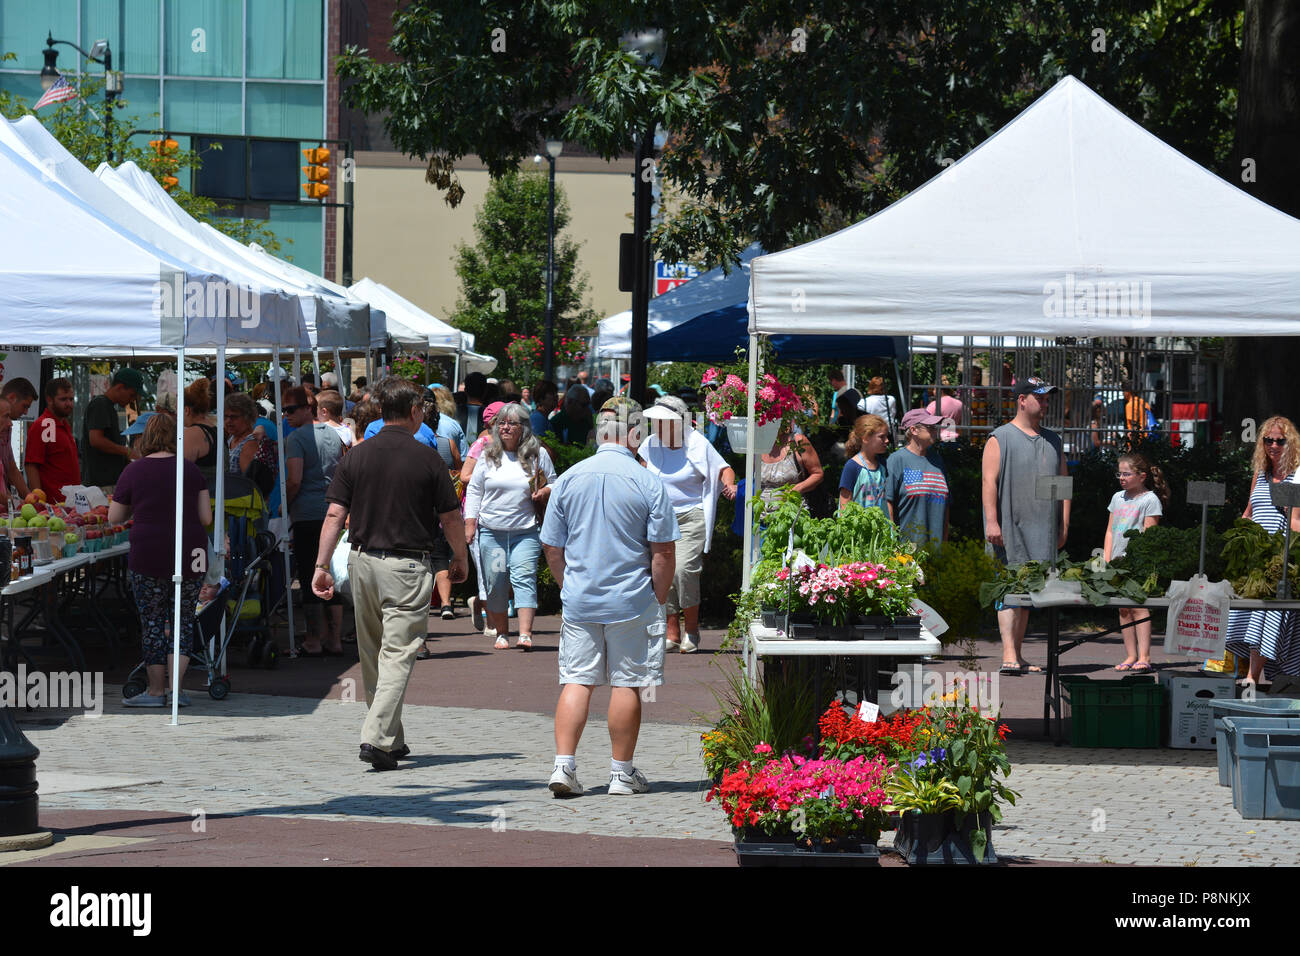 Random people scenes, Activities and people during Wilkes Barre PA's. popular thursday farmers market on the public square in central city July 2018 Stock Photo